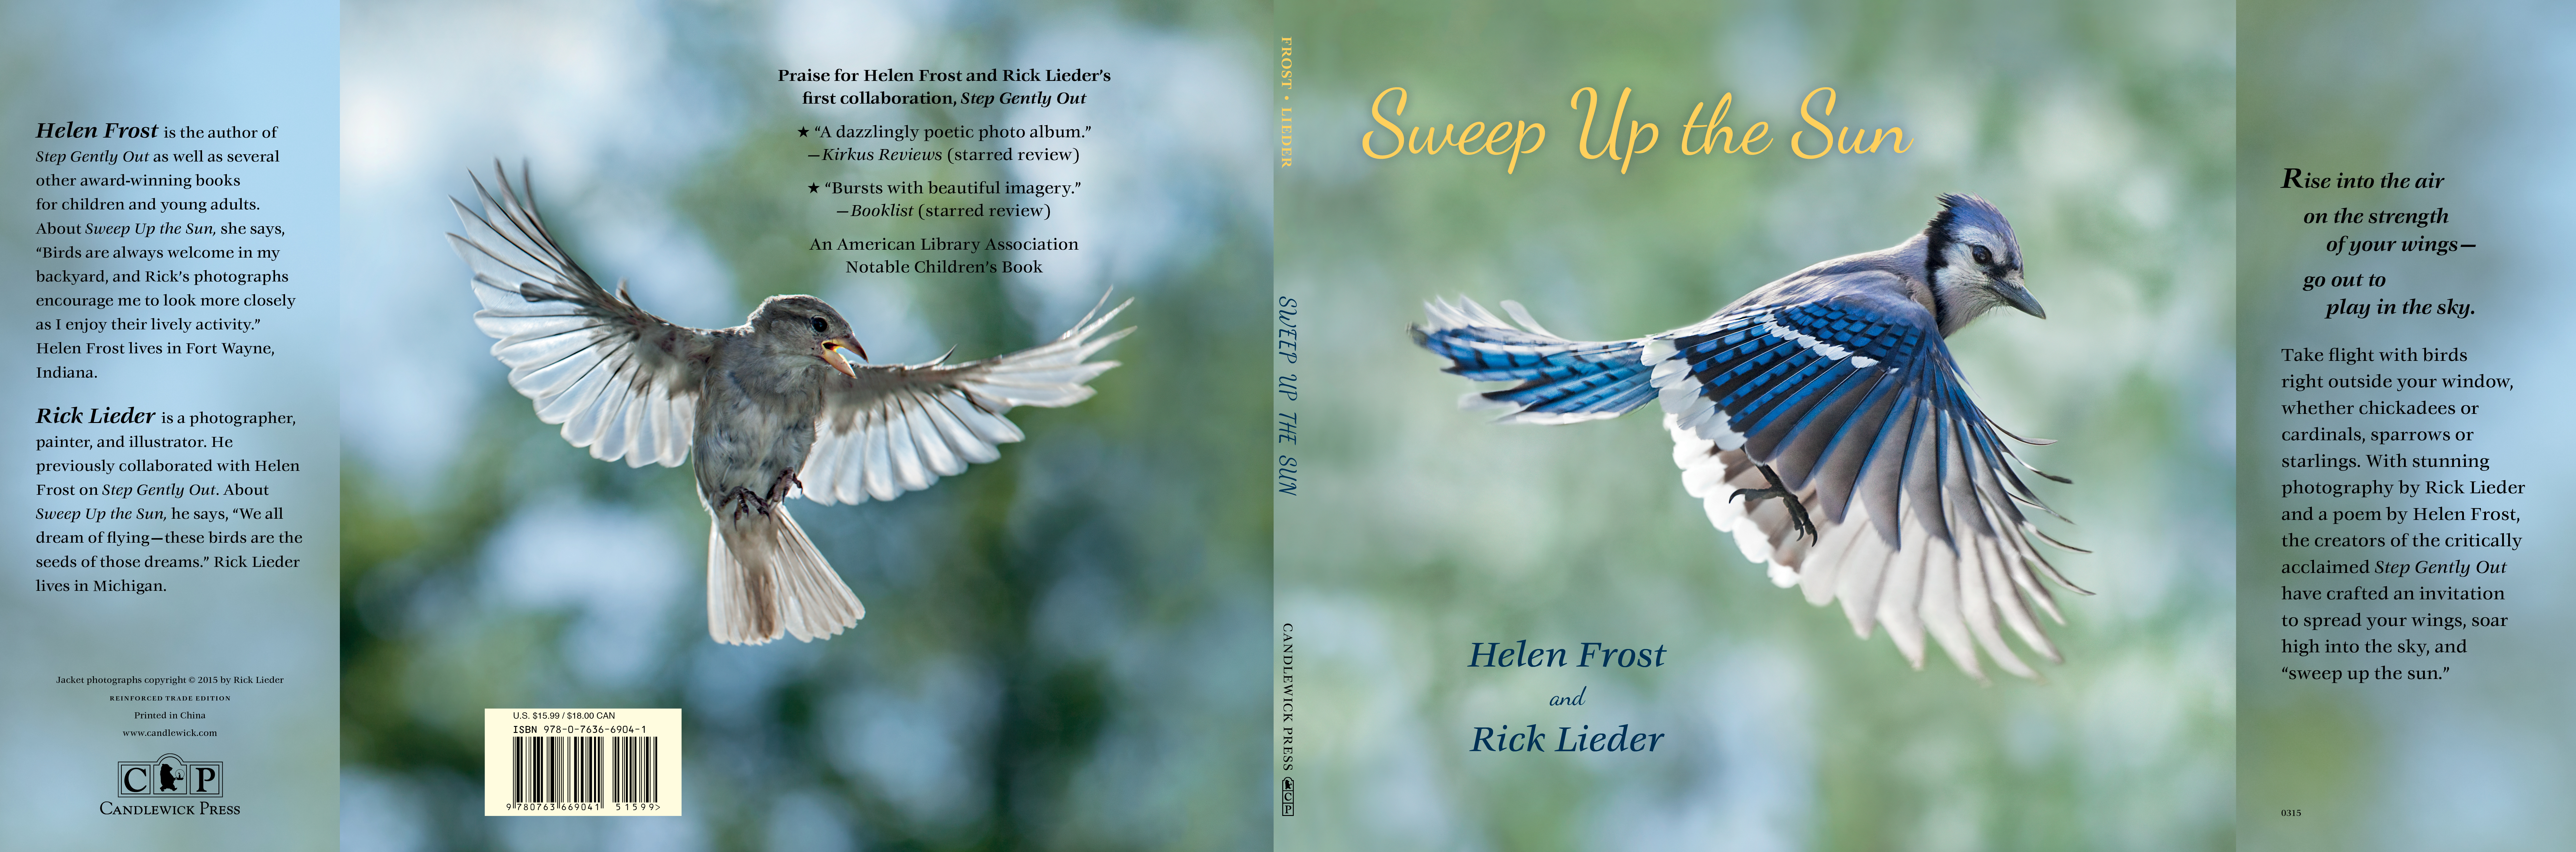 Full jacket for SWEEP UP THE SUN